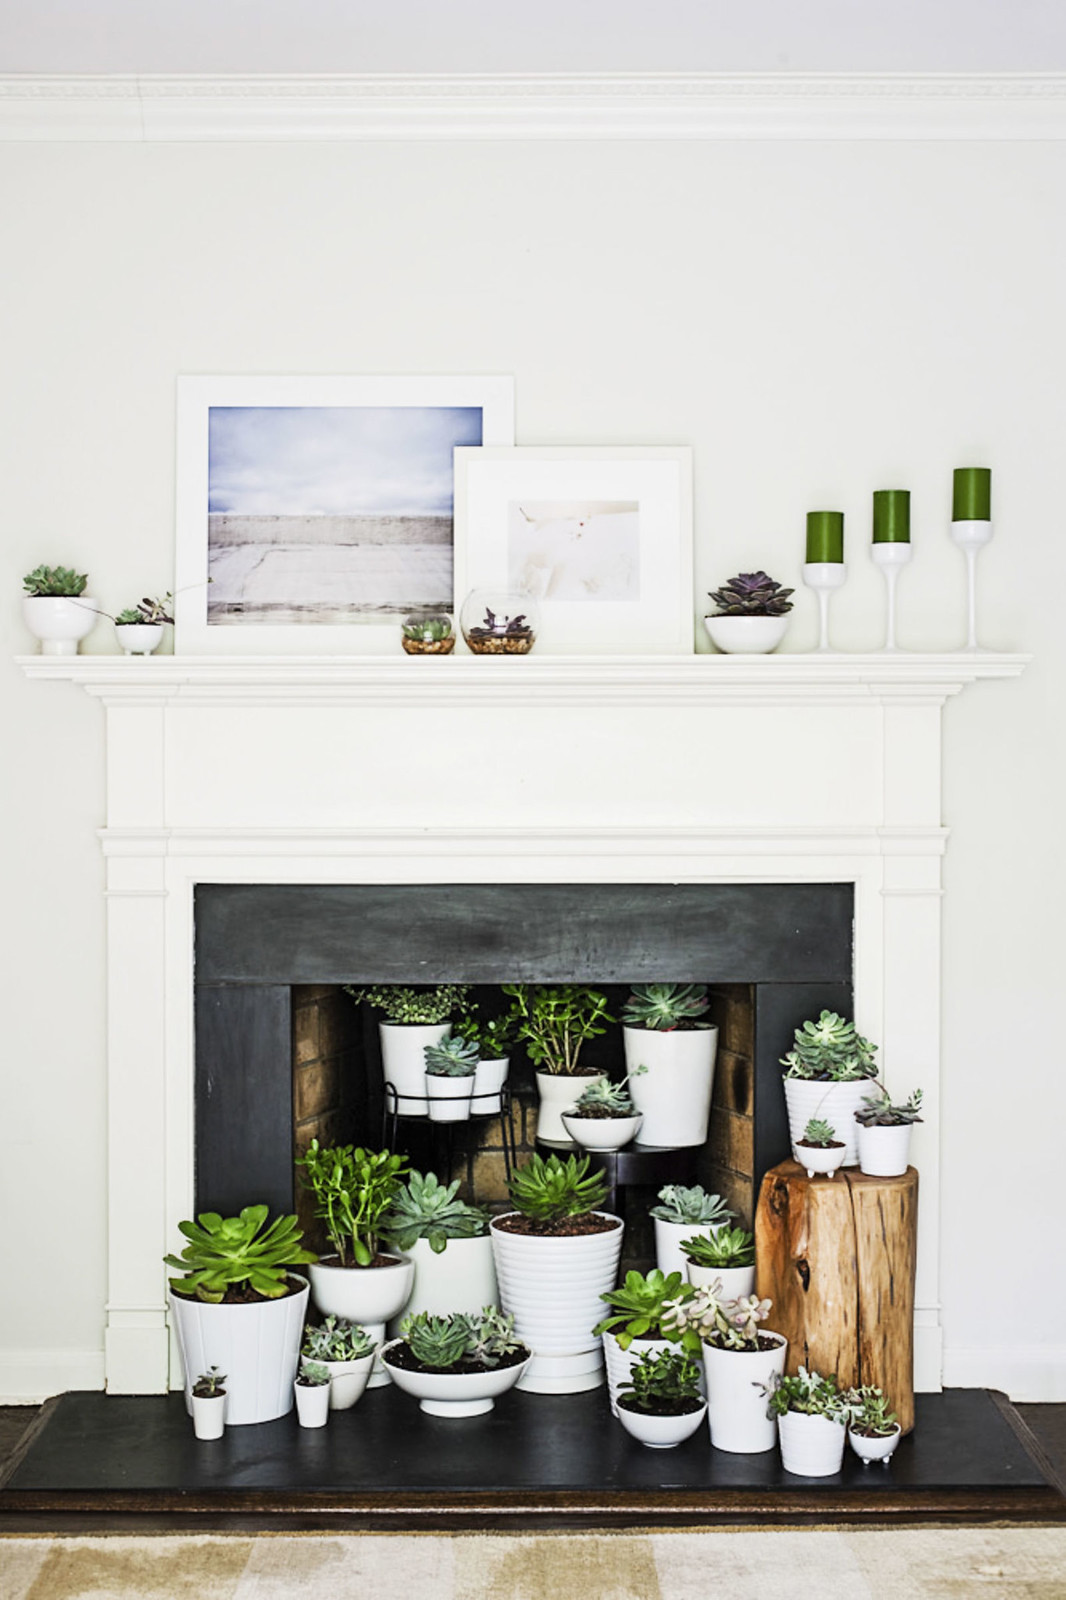 Potted plants in fireplace